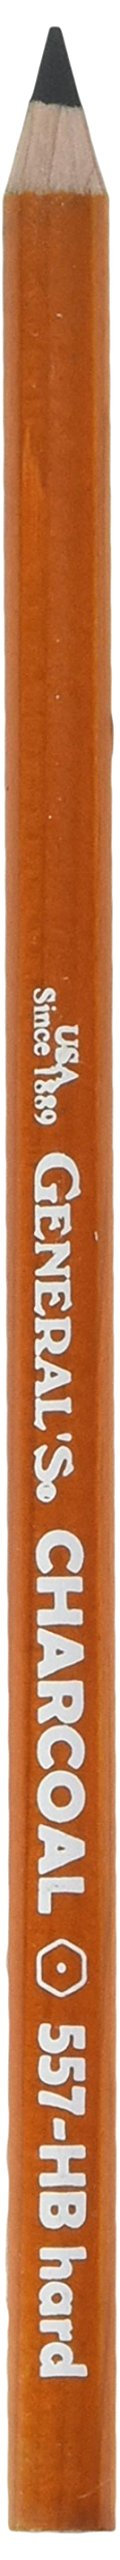 General's 557 Series Charcoal Pencils HB Each [Pack of 12 ] by GENERAL'S